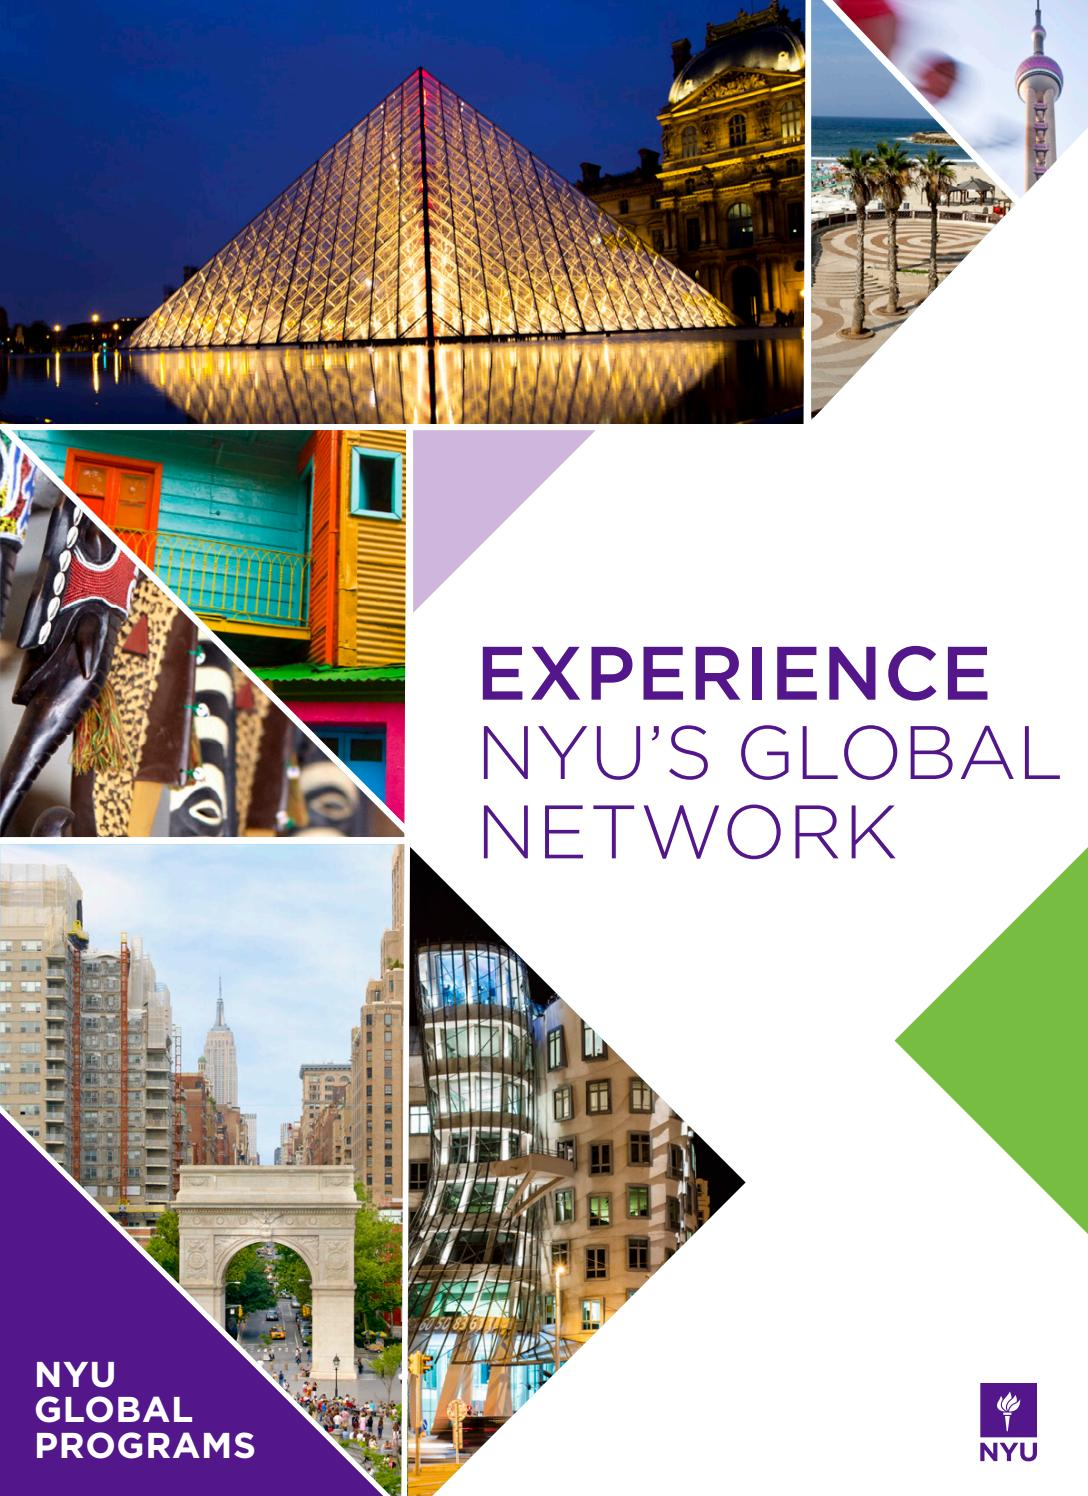 nyu global network essay Nyu application question or simply open to the options within nyu's global network write my class essay delivers high quality work and i am happy to be a.